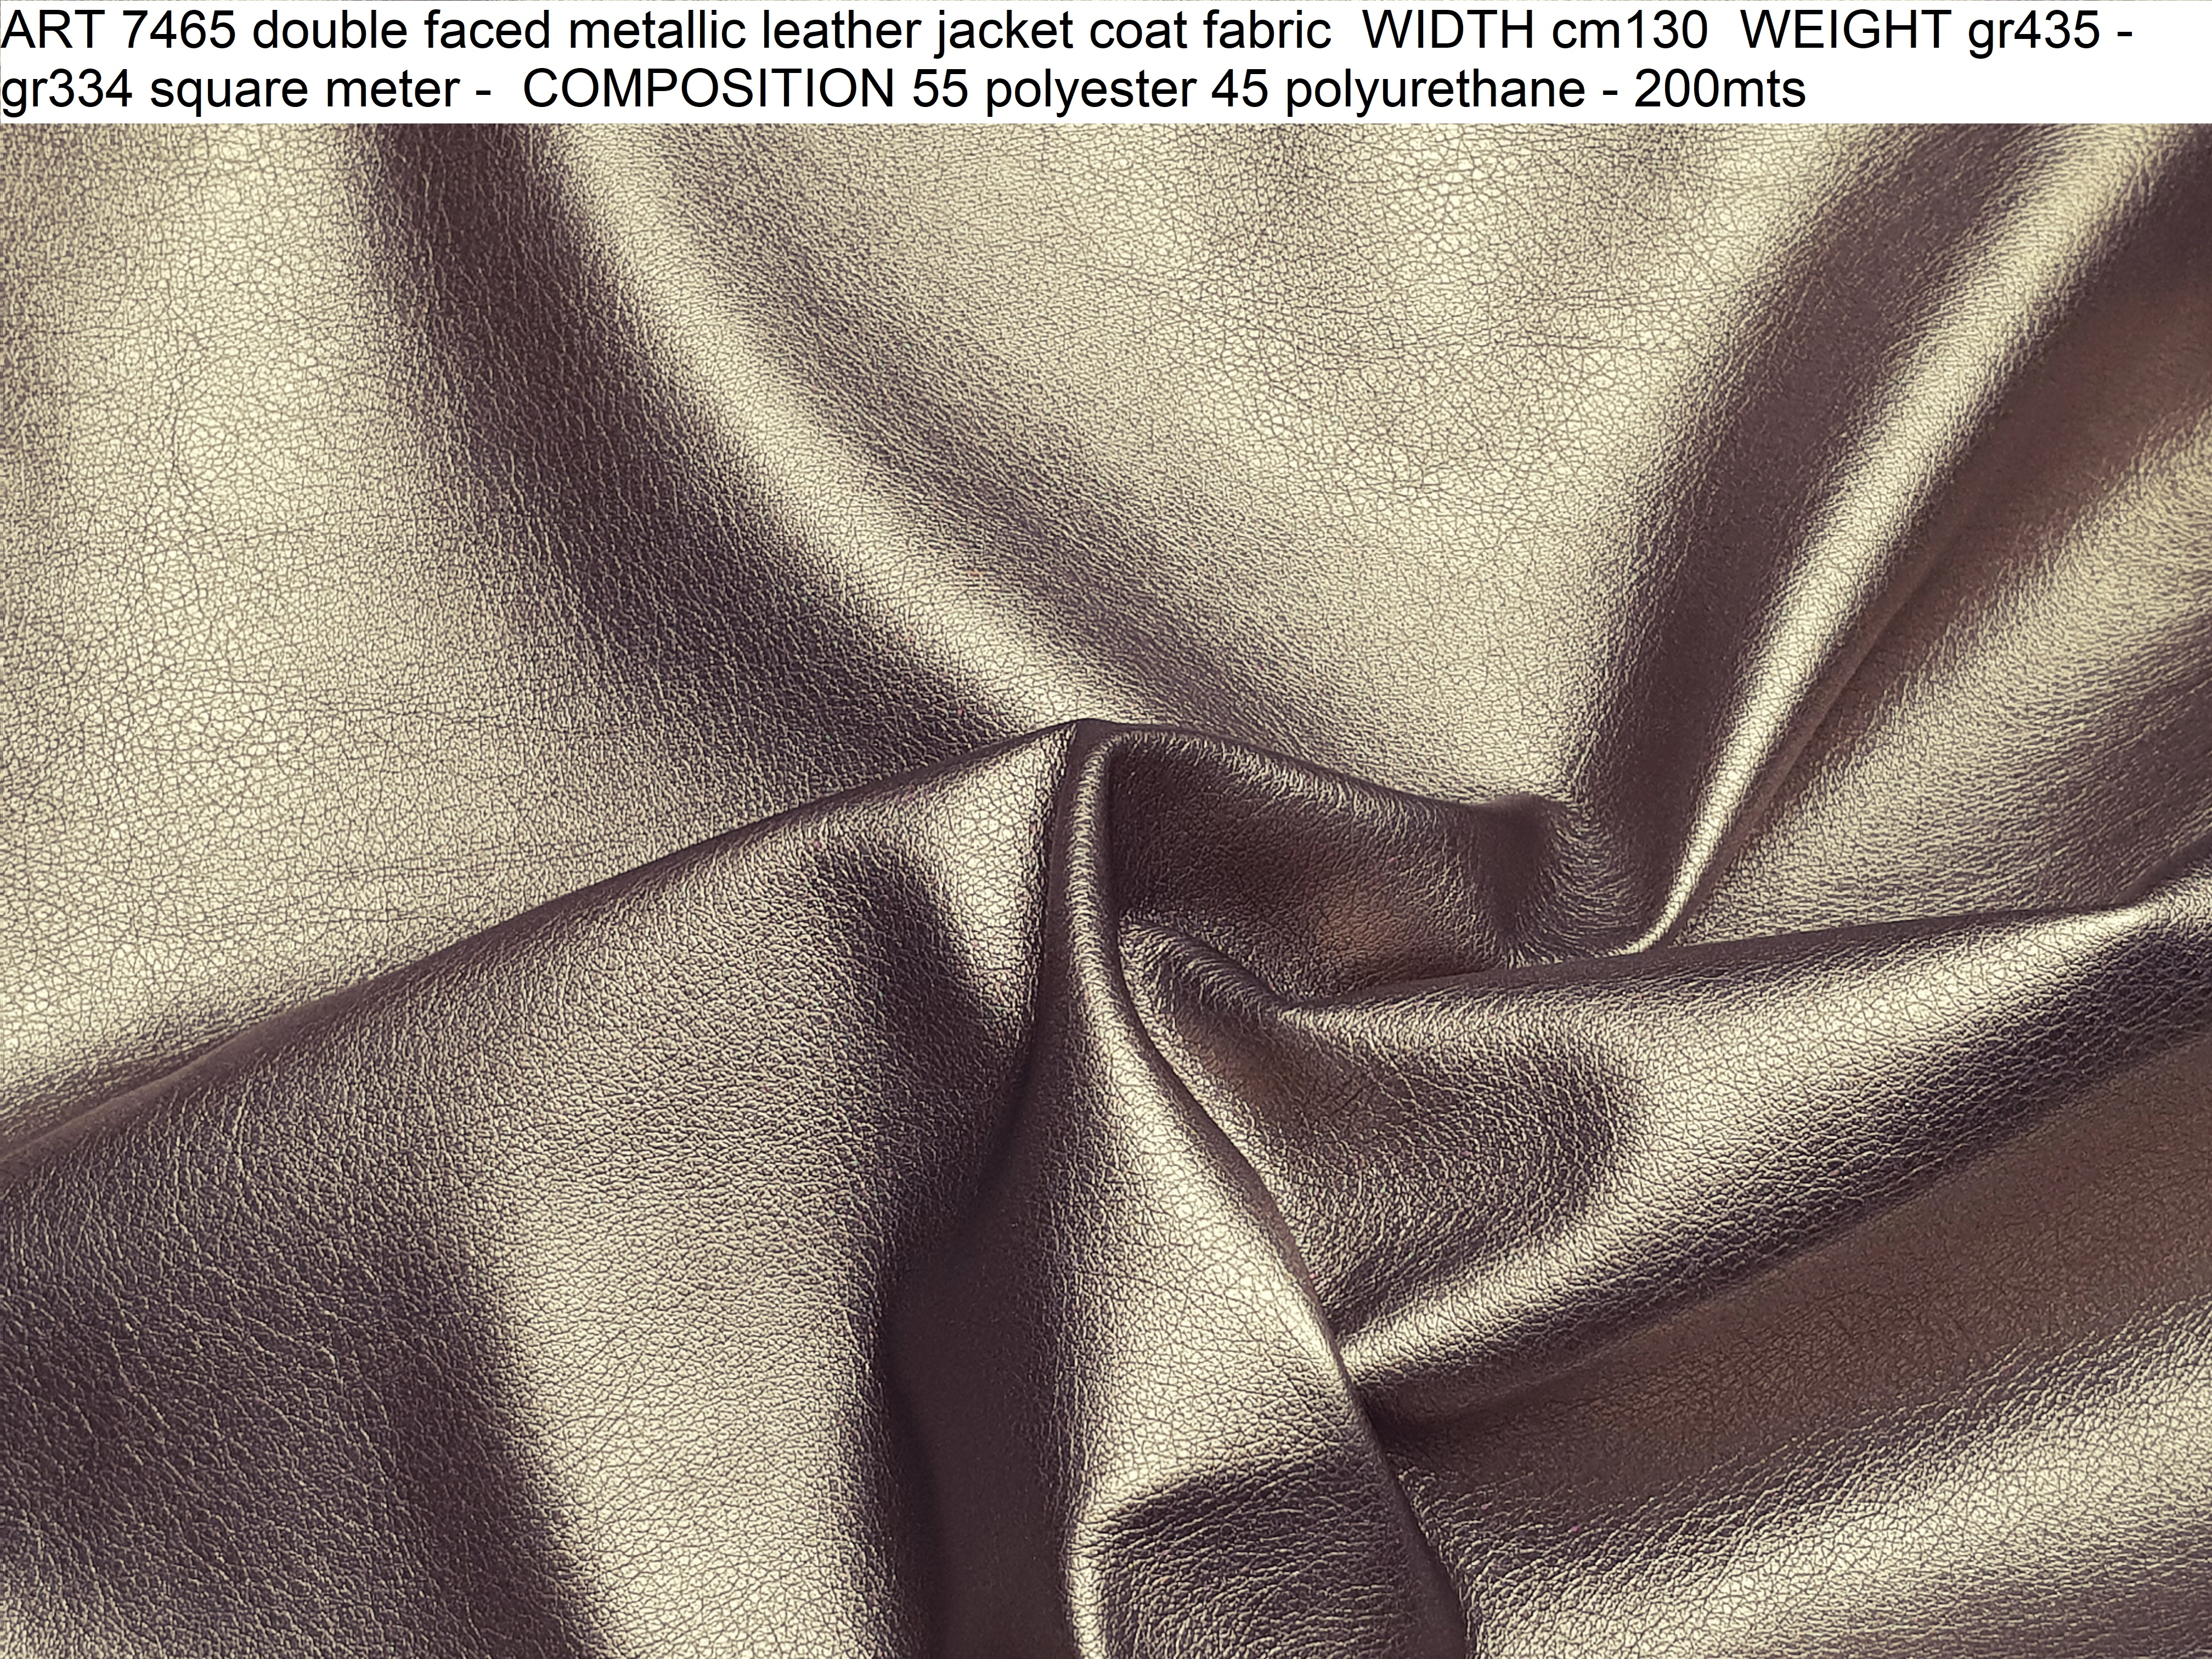 ART 7465 double faced metallic leather jacket coat fabric WIDTH cm130 WEIGHT gr435 - gr334 square meter - COMPOSITION 55 polyester 45 polyurethane - 200mts